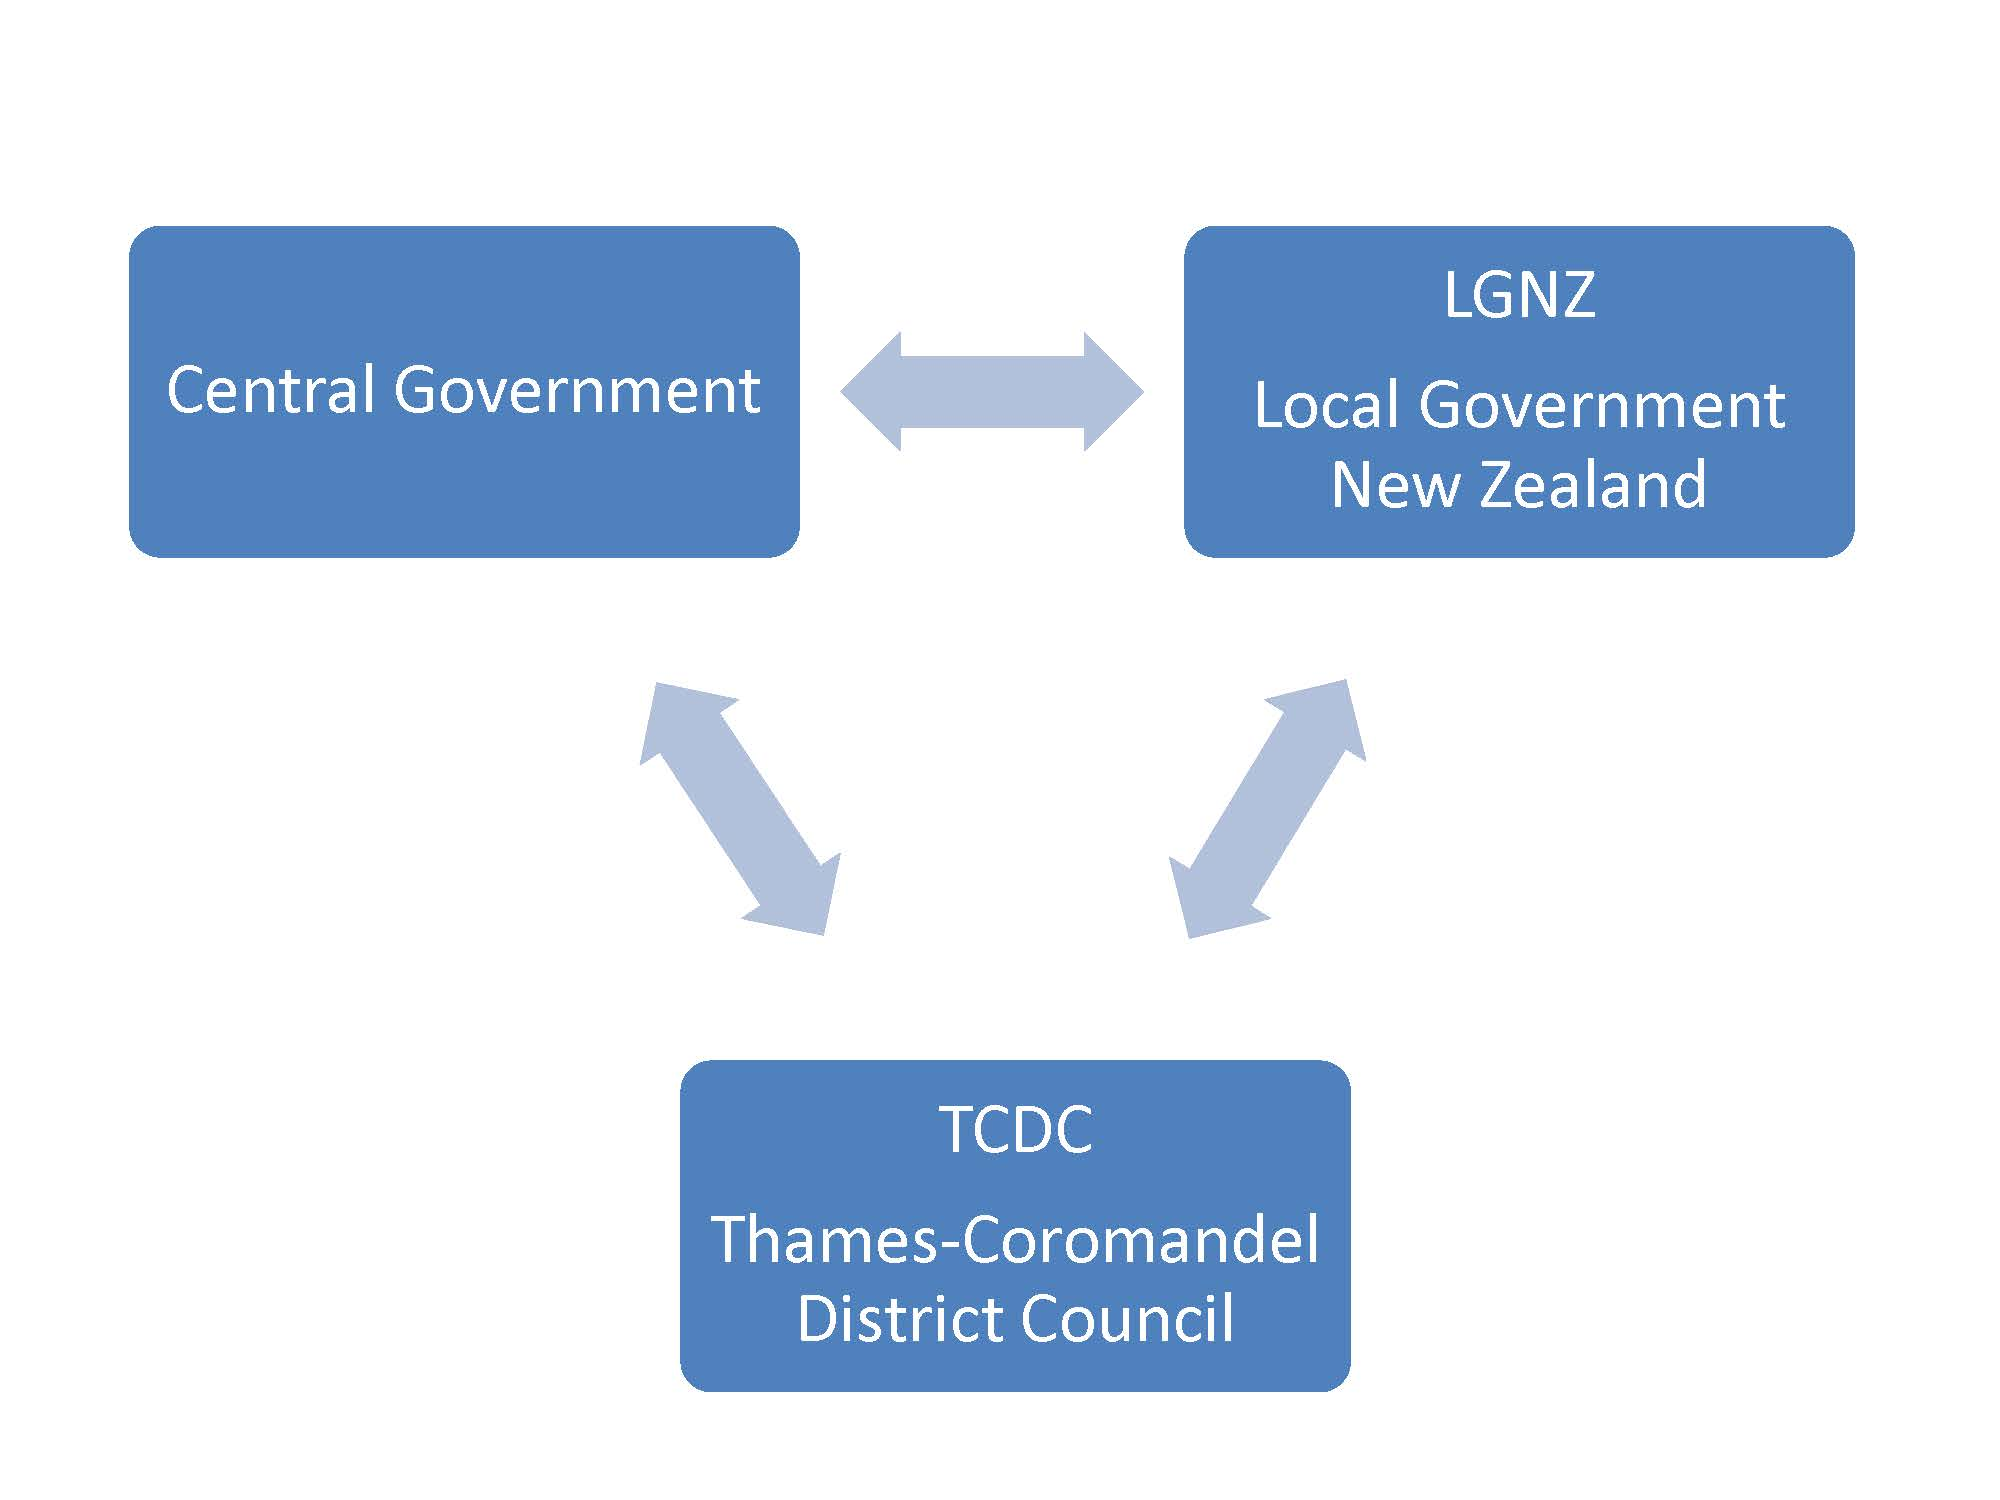 Triangular relationship between central government, council and LGNZ